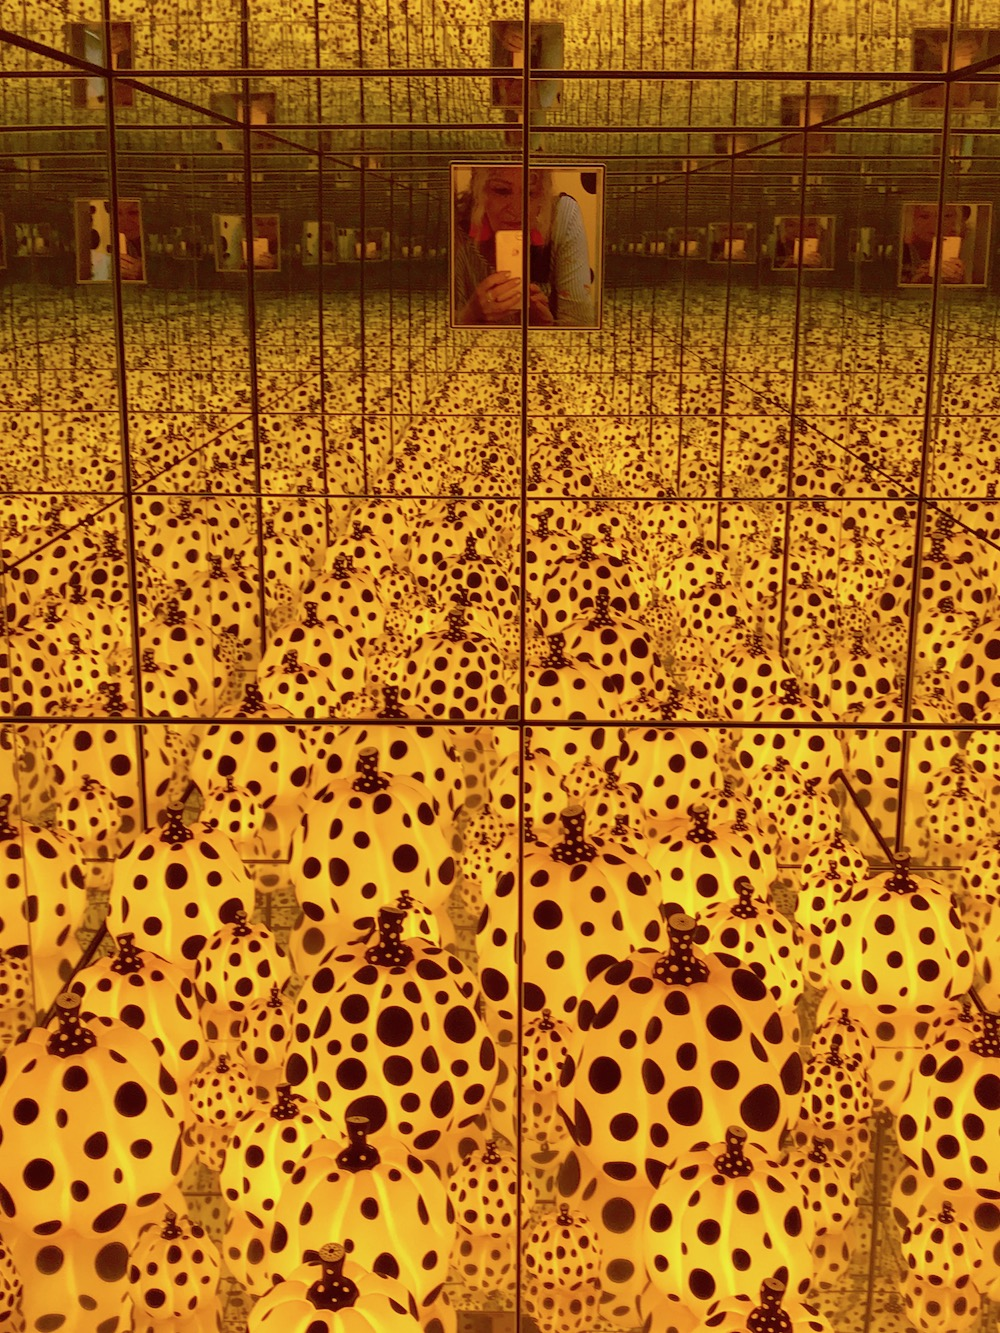 Infinity room with mirrors and pumpkins by Kusama |curlytraveller.com